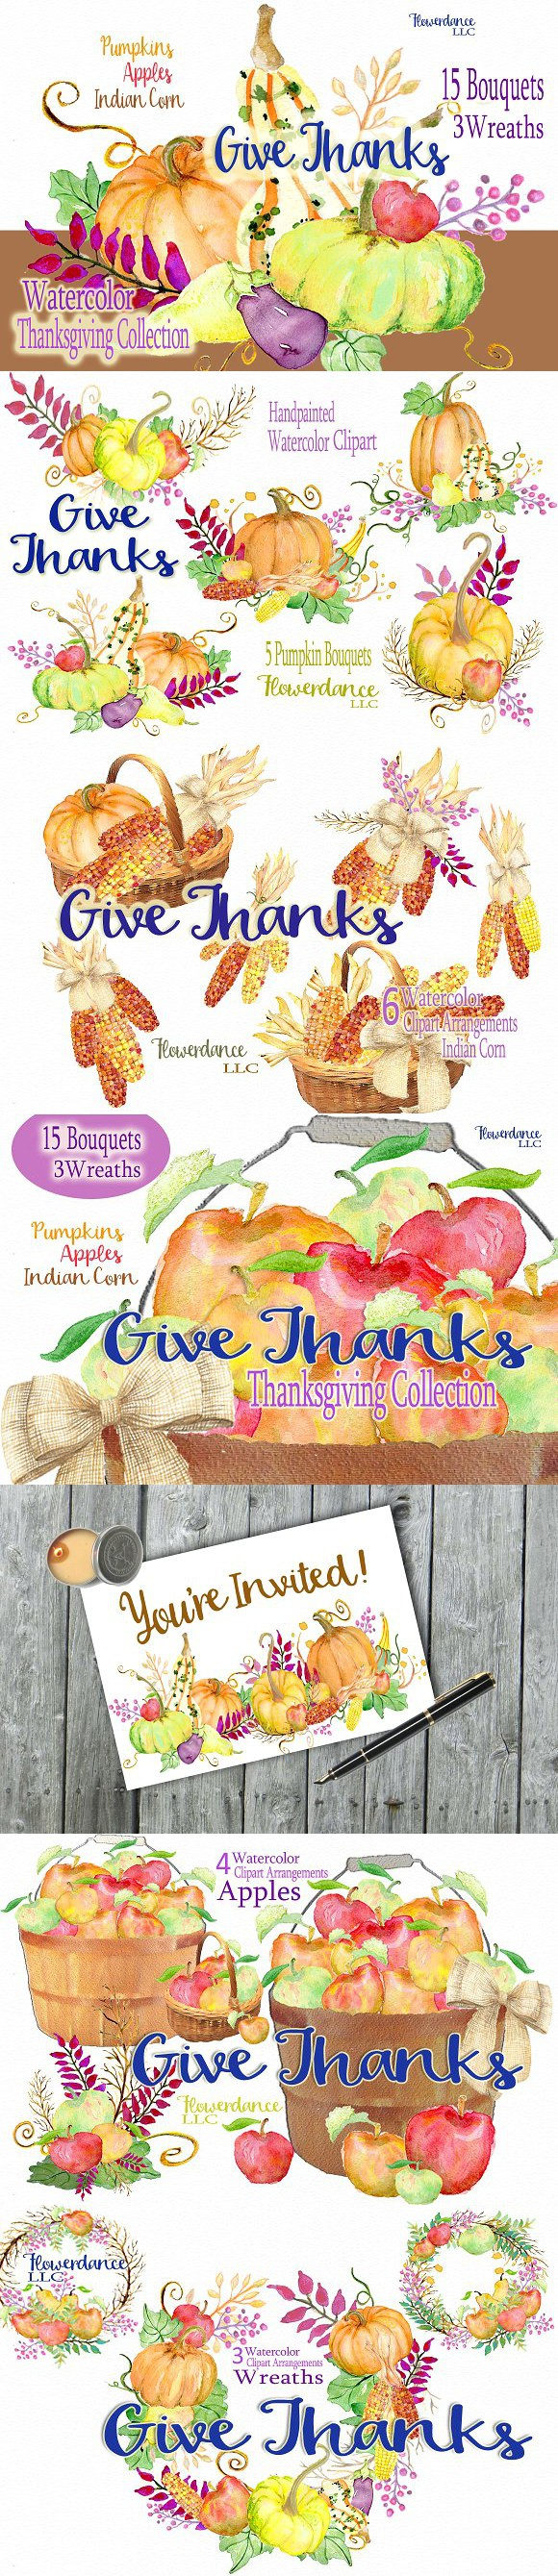 Give Thanks Thanksgiving Collection. Wedding Card Templates